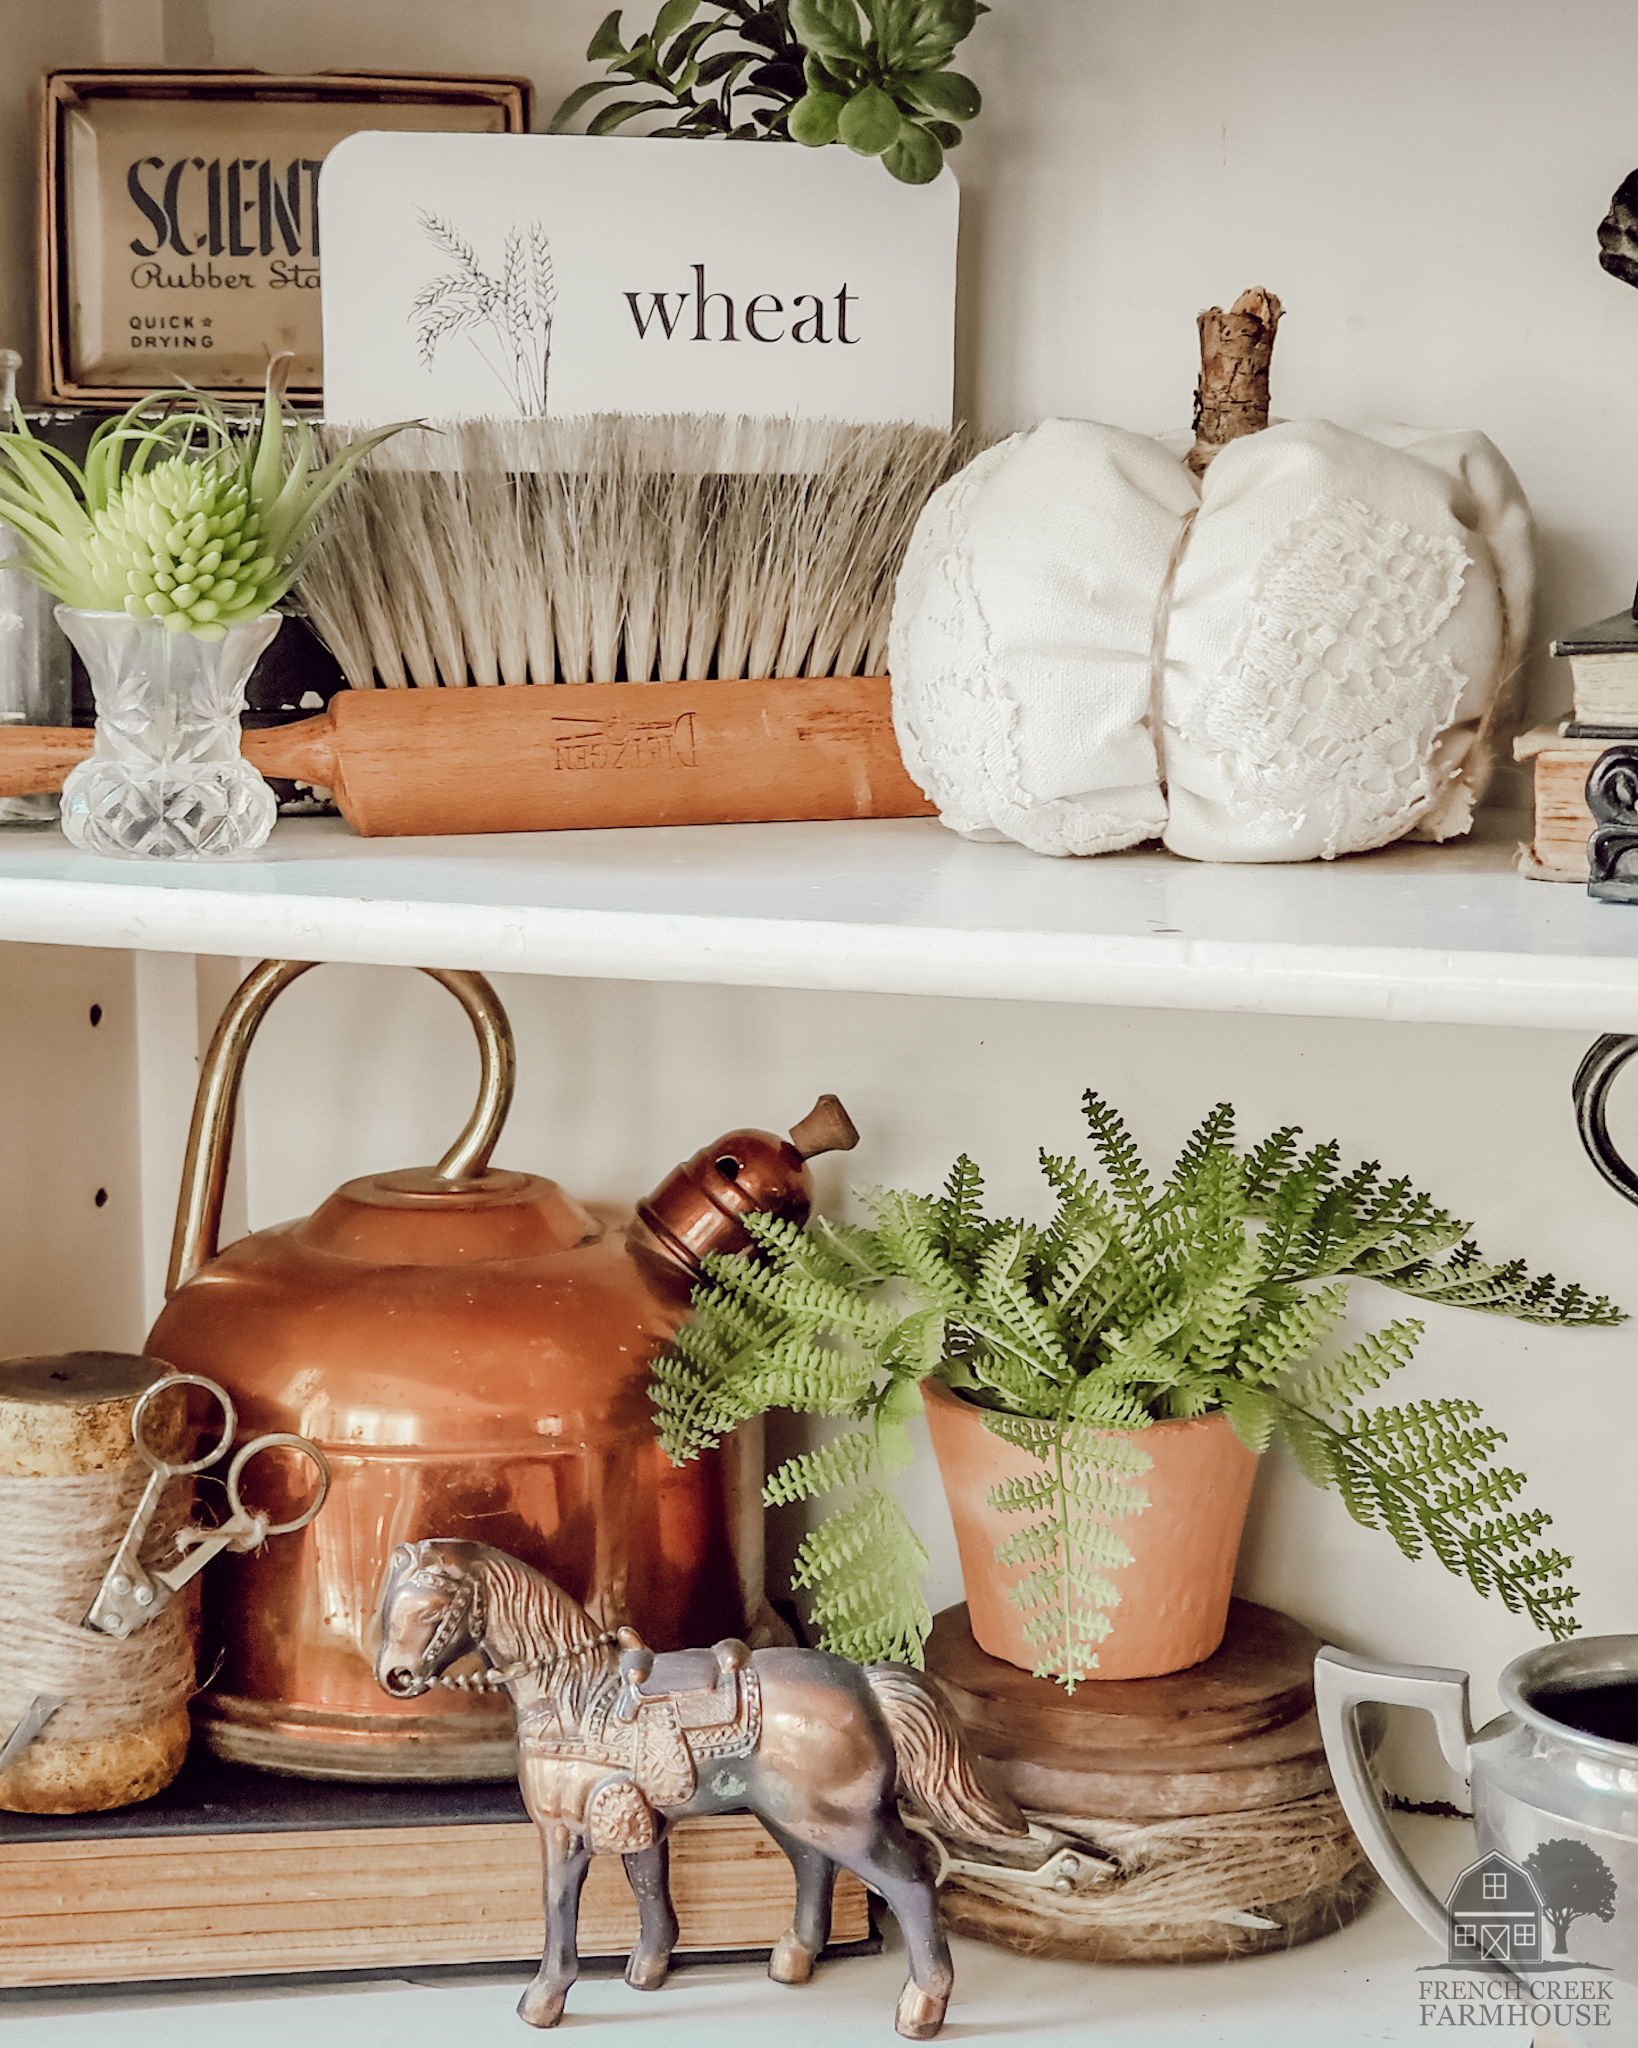 Copper tea kettles and neutral vintage items fill our farmhouse shelves